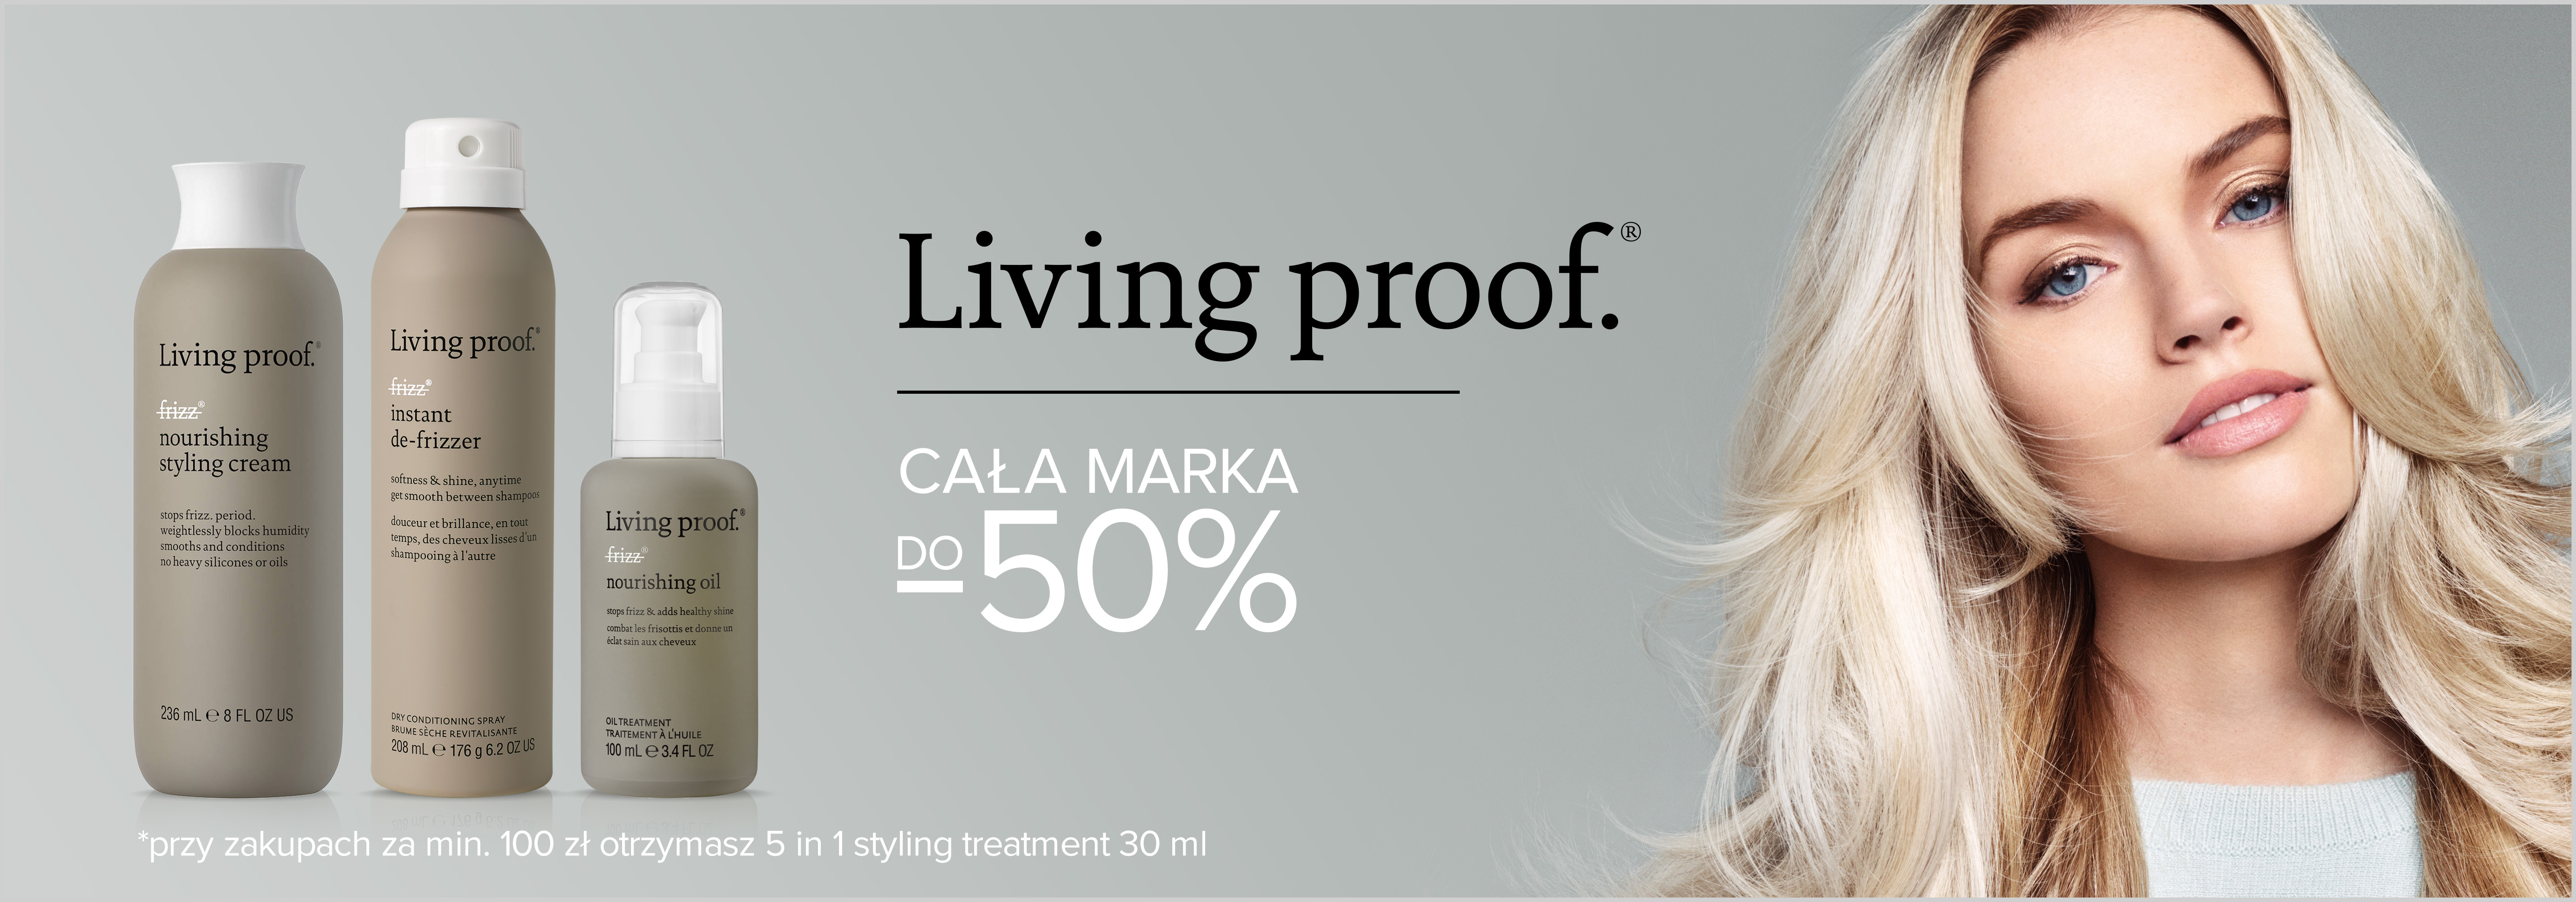 living proof -50%